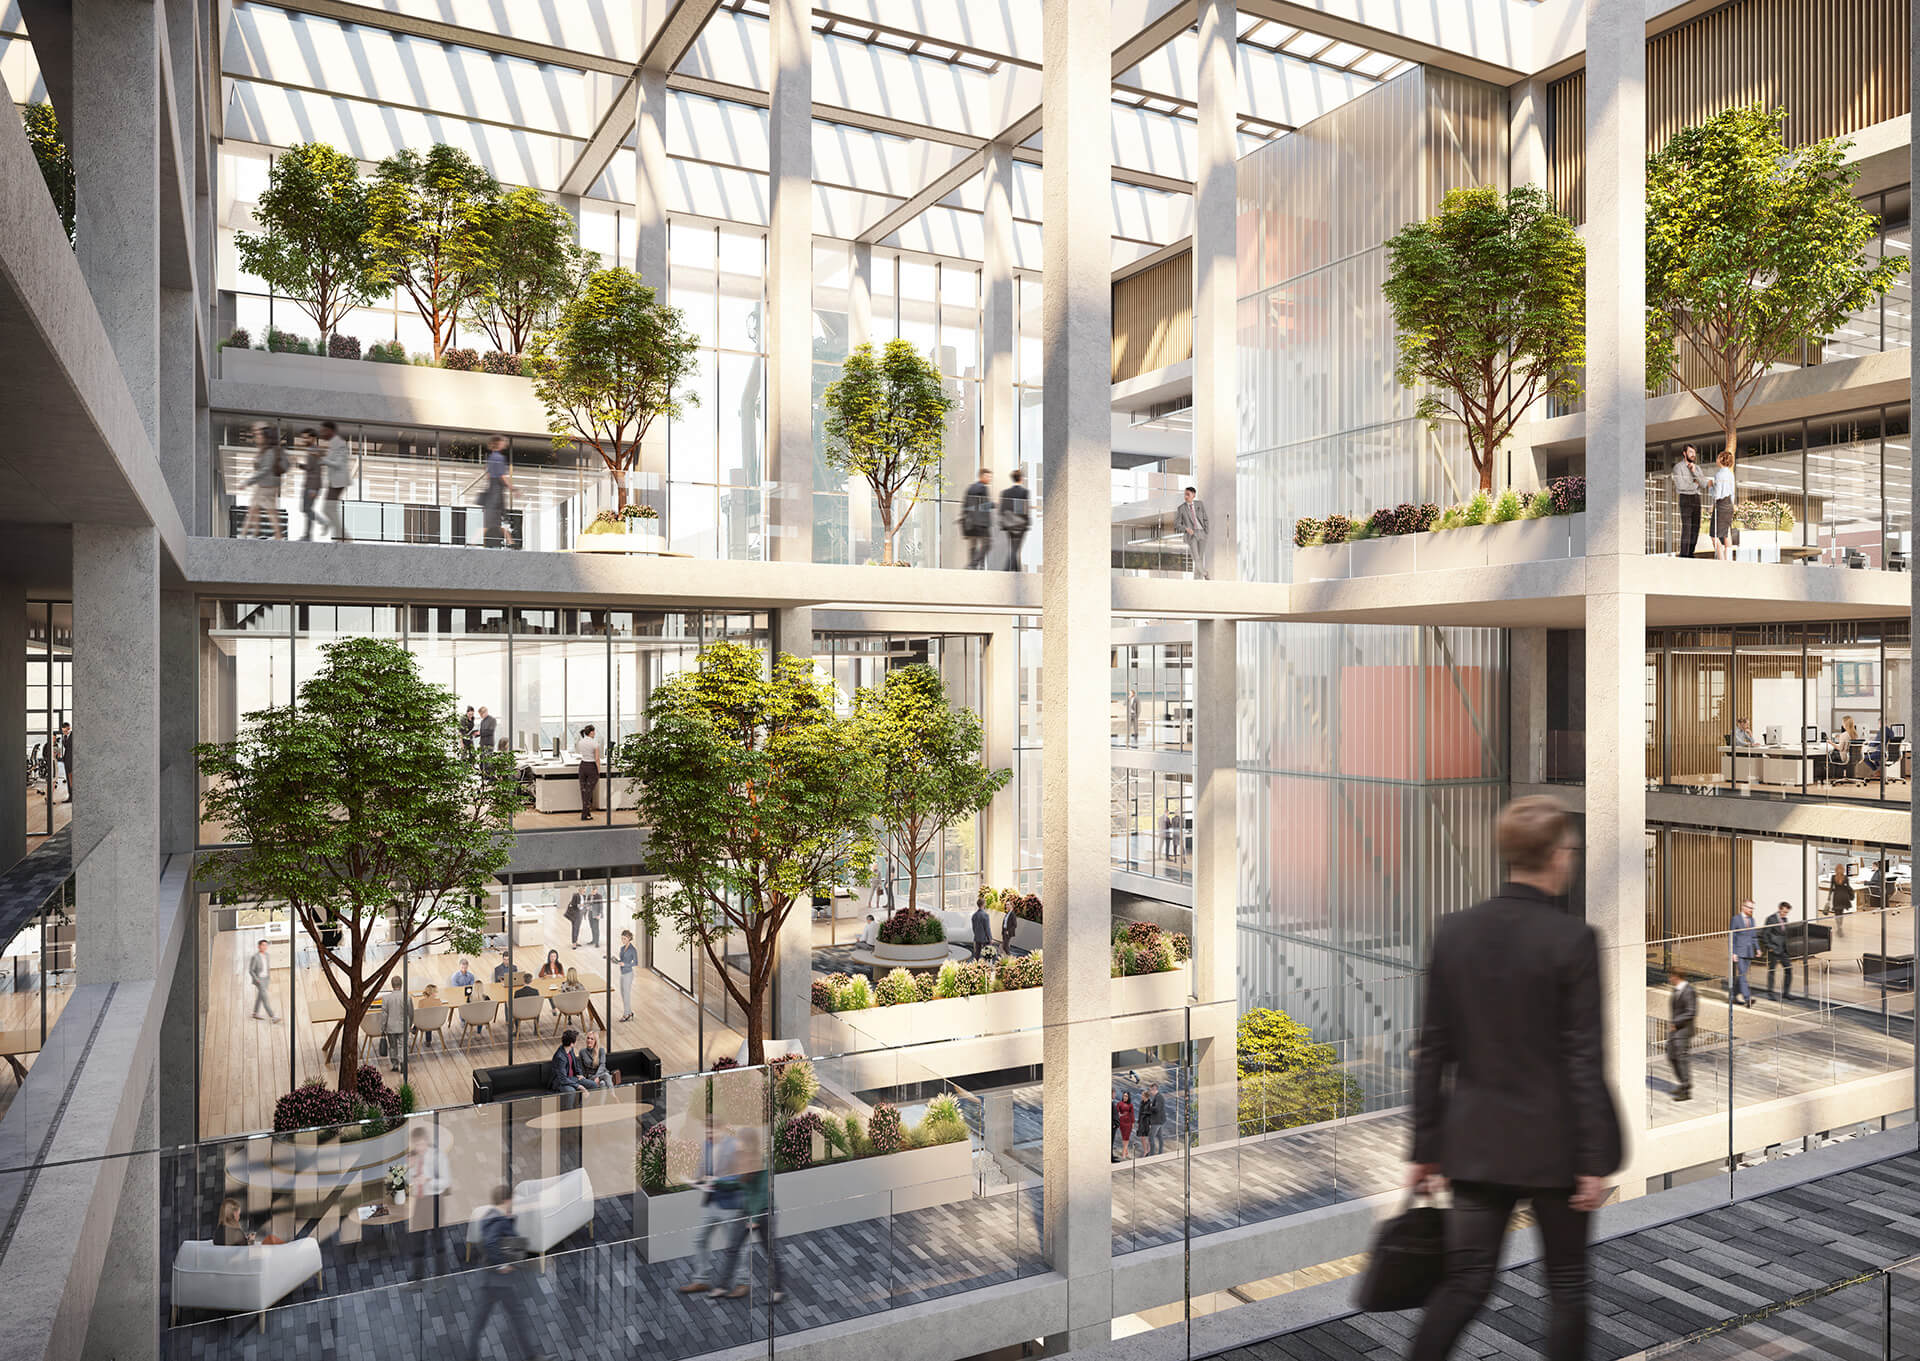 The ICÔNE project has been punctured with multiple green spaces | Icône office complex | Foster + Partners | STIRworld